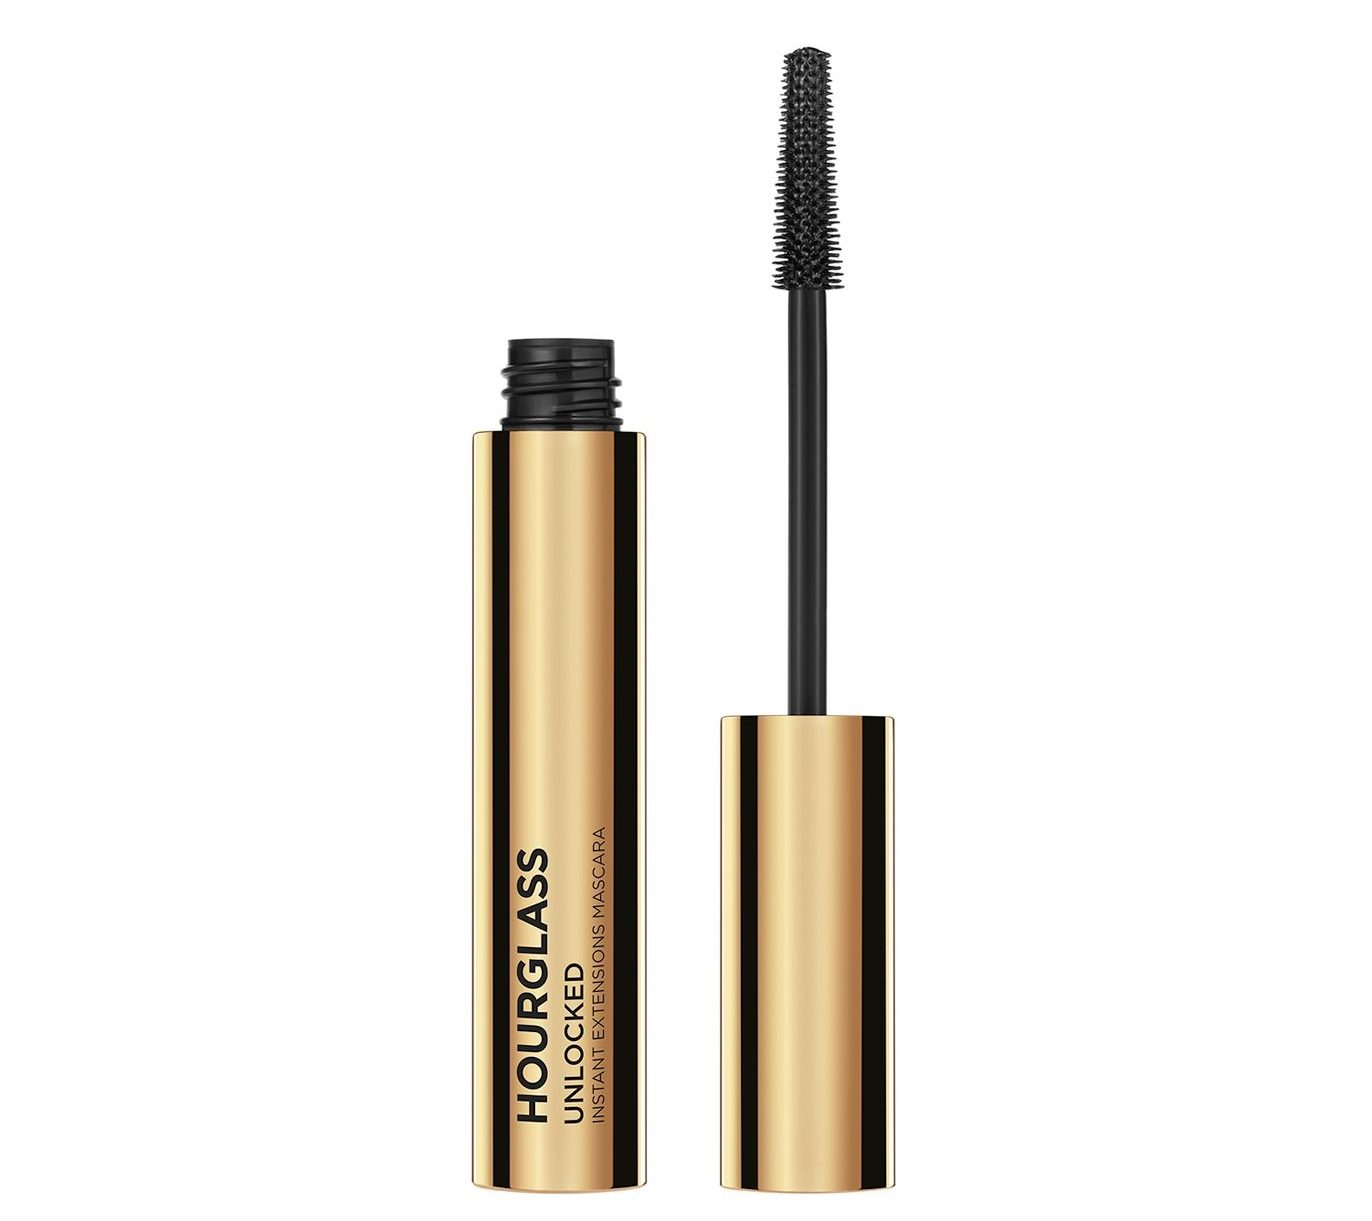 My Celebrity Life – Hourglass Unlocked Instant Extensions Mascara